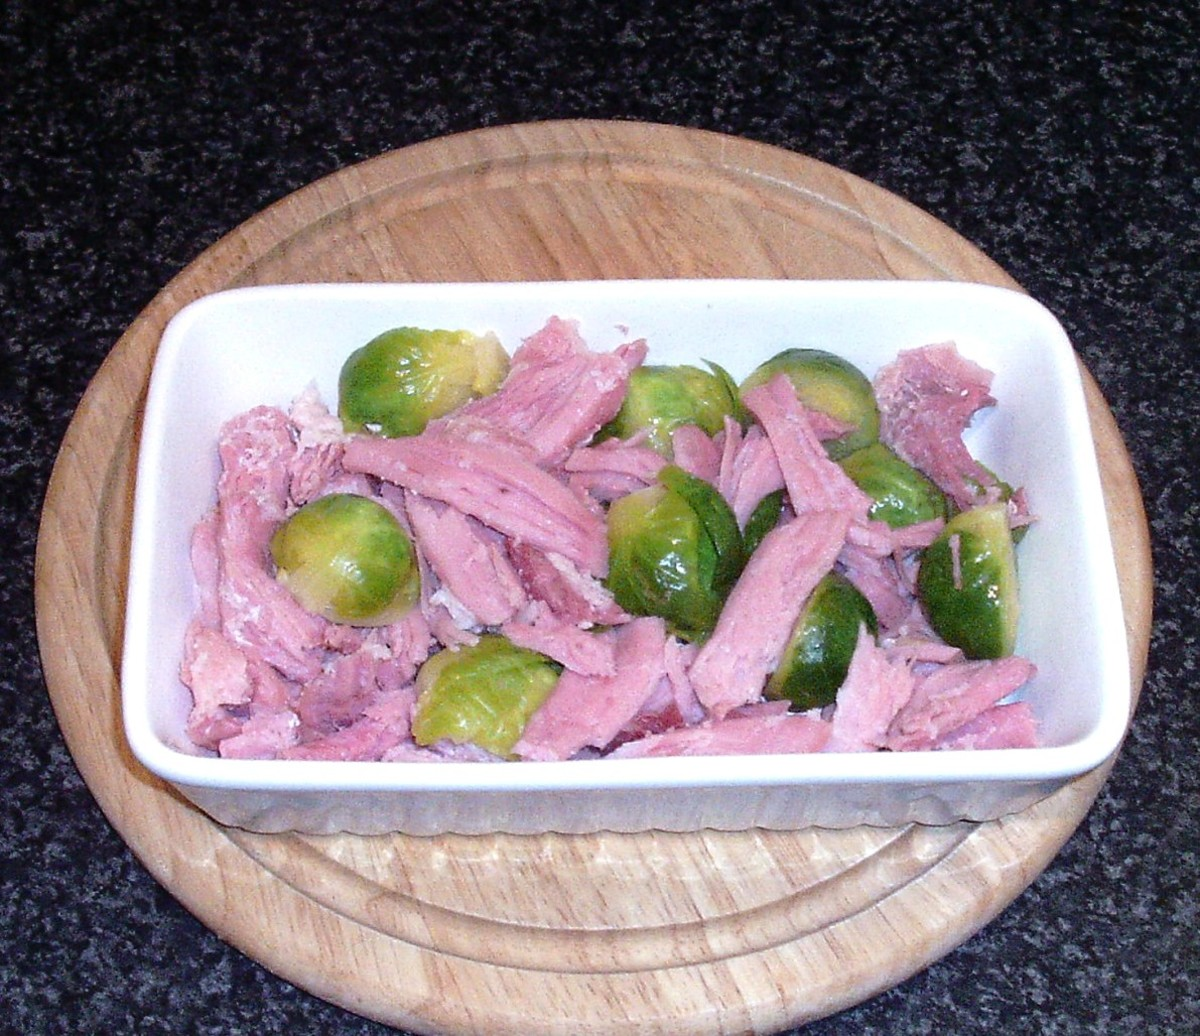 Assembled ham and sprouts